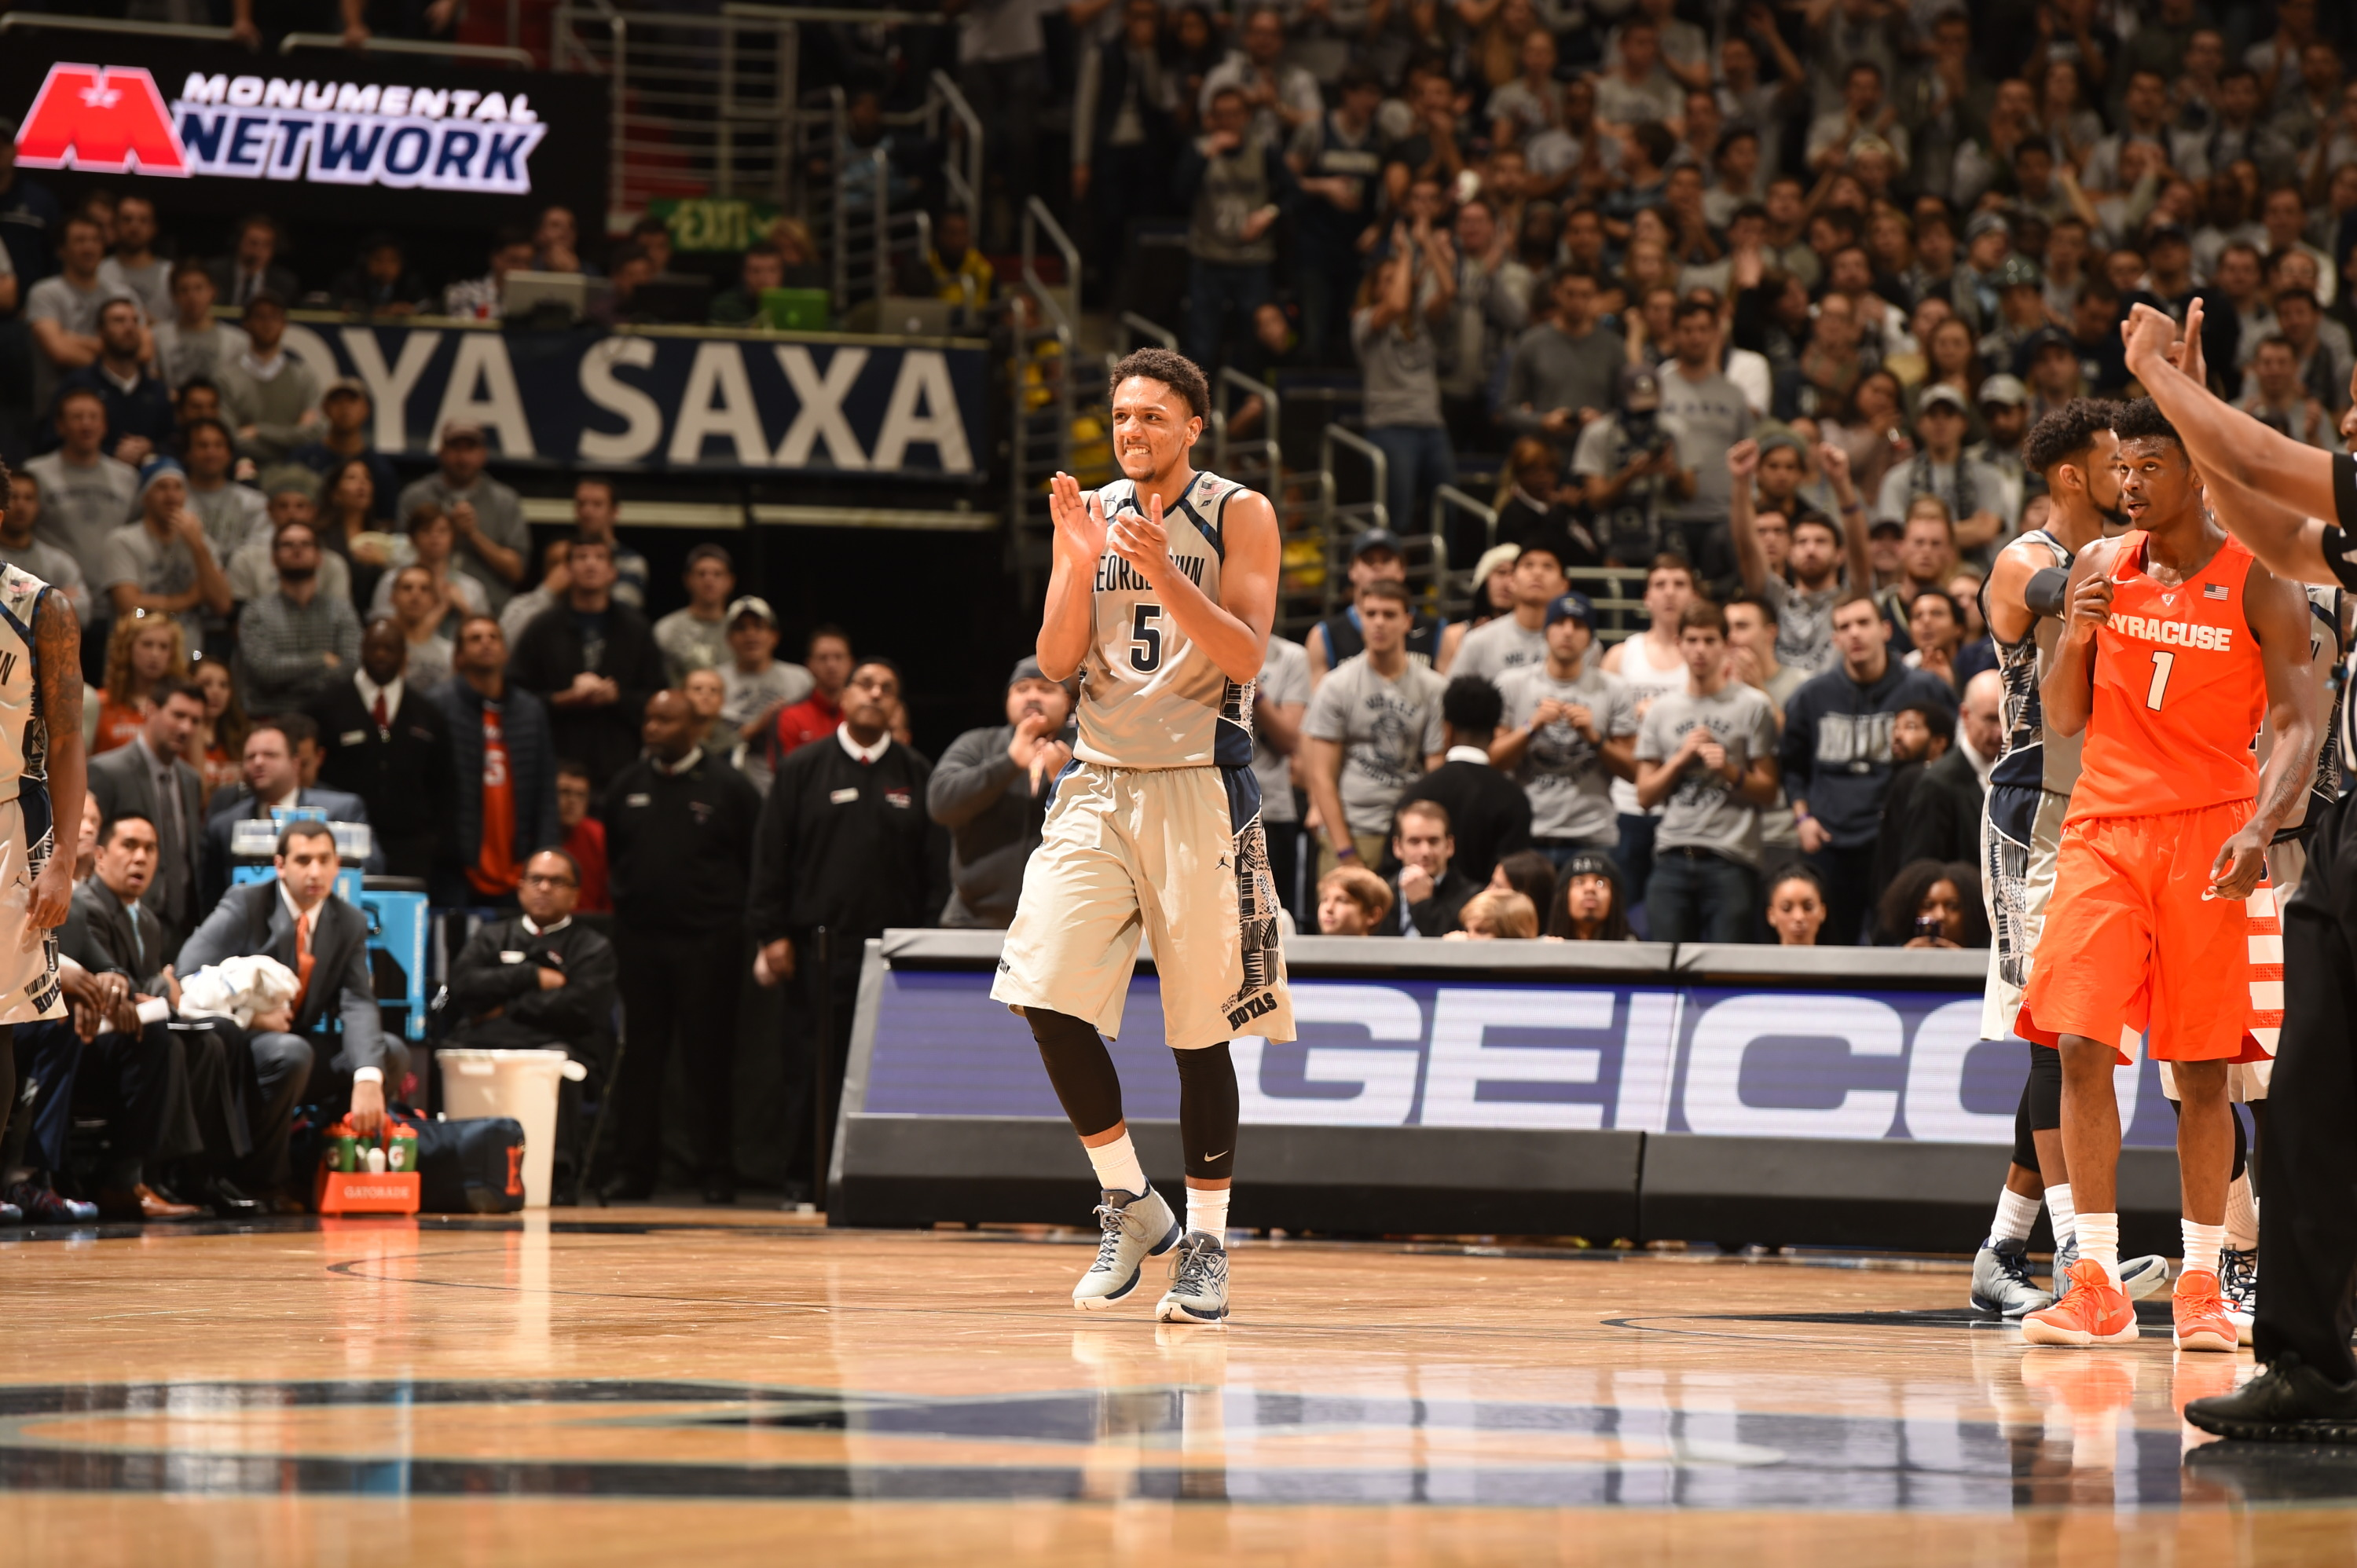 The Georgetown University men's basketball team will be back on the hardwood on Saturday, Dec. 12, hosting UNC Wilmington at Verizon Center.  Tipoff is slated for 2:30 p.m.